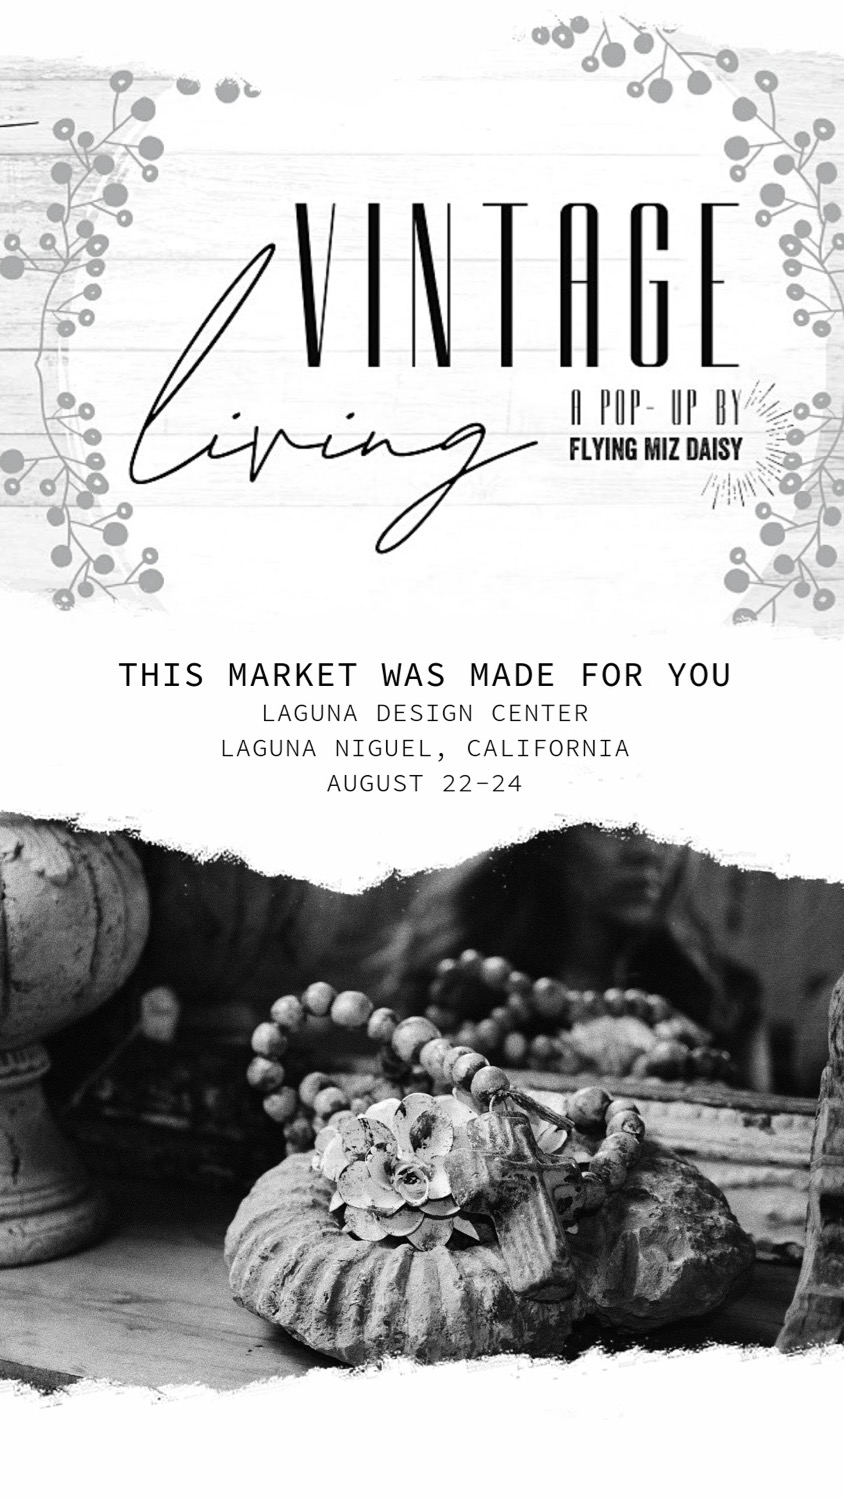 Save the date and join us at The Laguna Design Center in Laguna Niguel, California for Vintage Living.